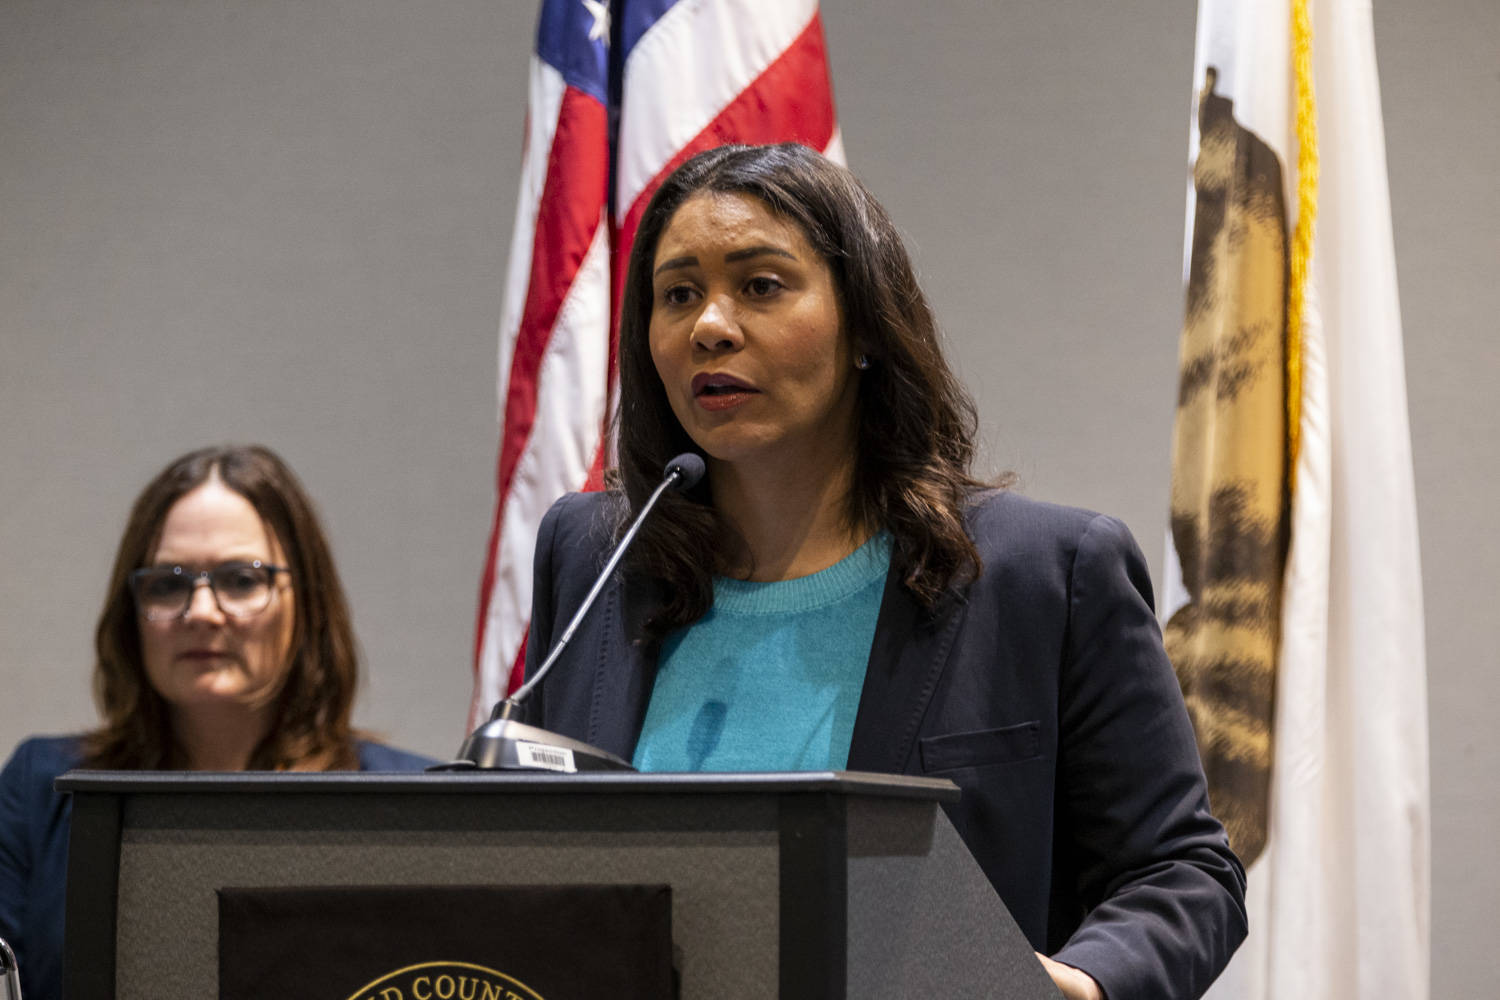 San Francisco Mayor London Breed is asking city department heads to submit proposed budget cuts by June 12. (Chris Victorio|Special to S.F. Examiner)